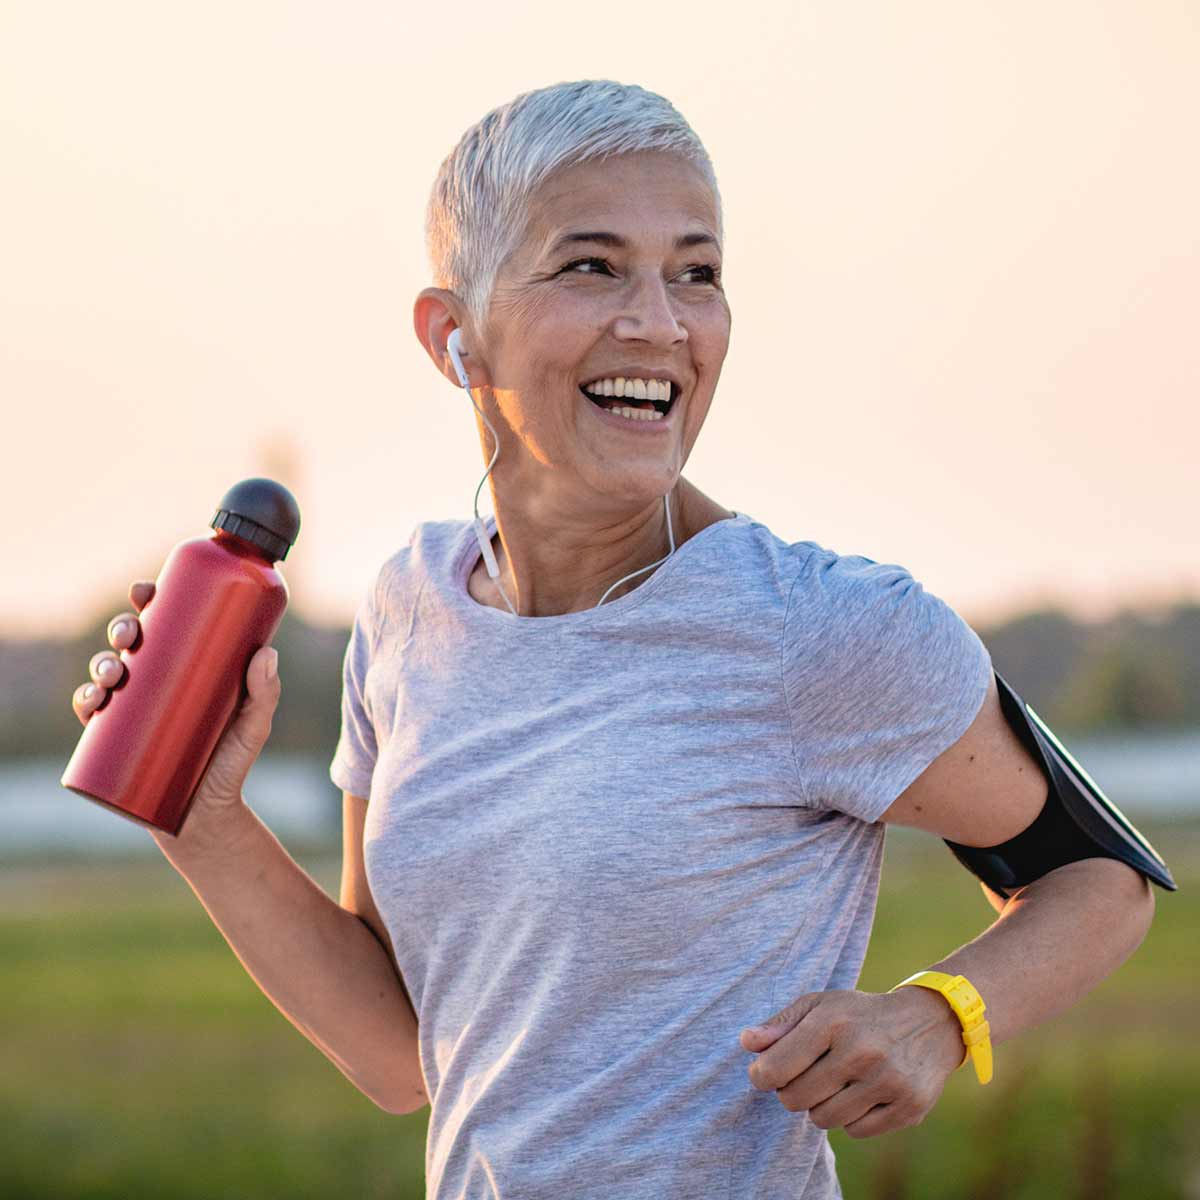 Image of someone running with a bottle of water in their hand and smiling.